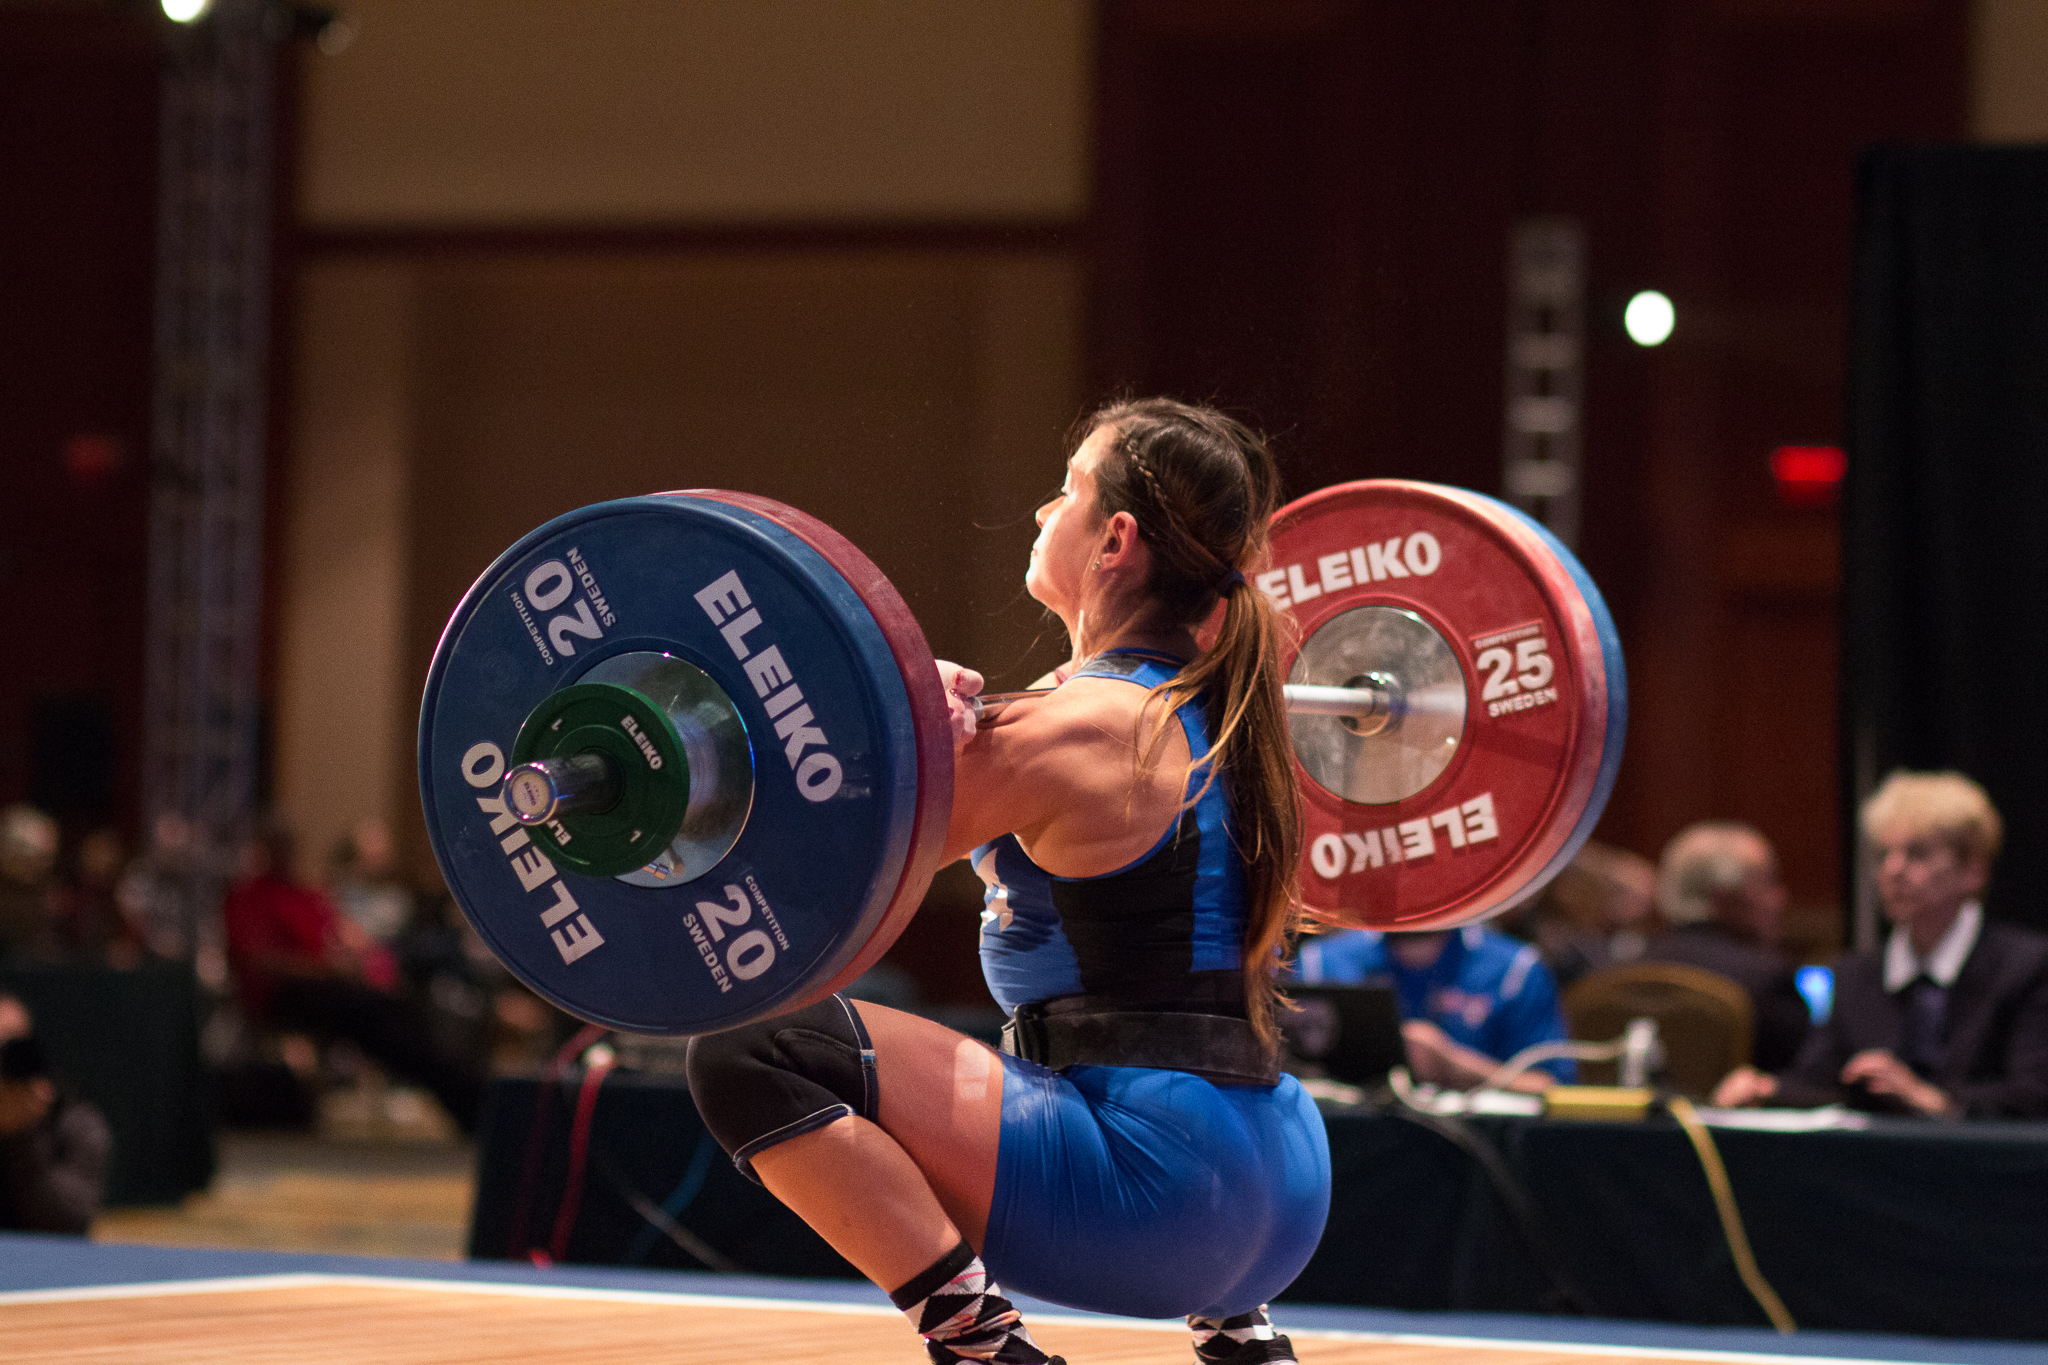 american-open-photos-session-a-weightlifters-weightlifting-photography-everyday-lifters (8 of 10).jpg